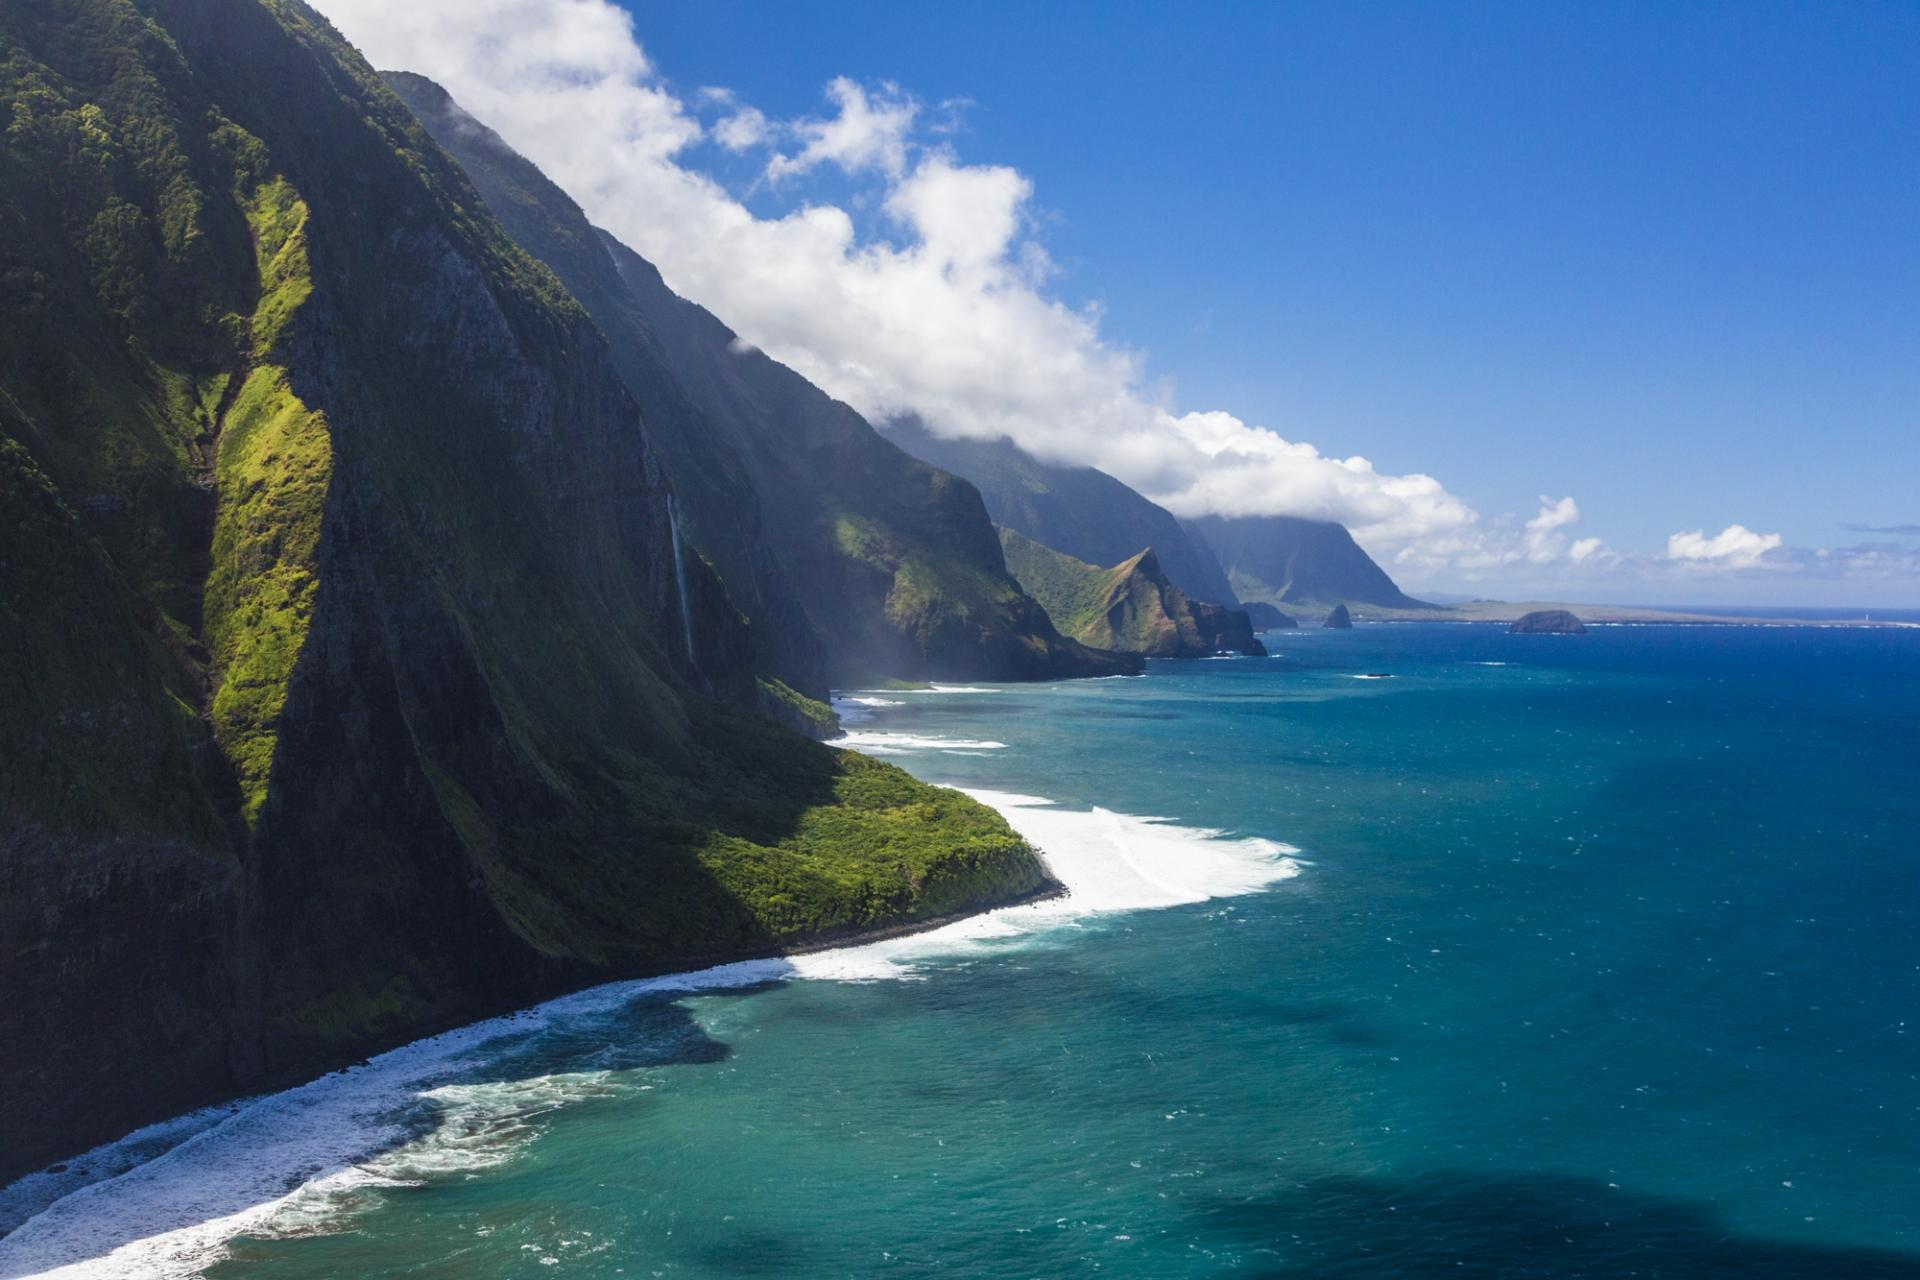 The green sea cliffs on the coast of Molokai